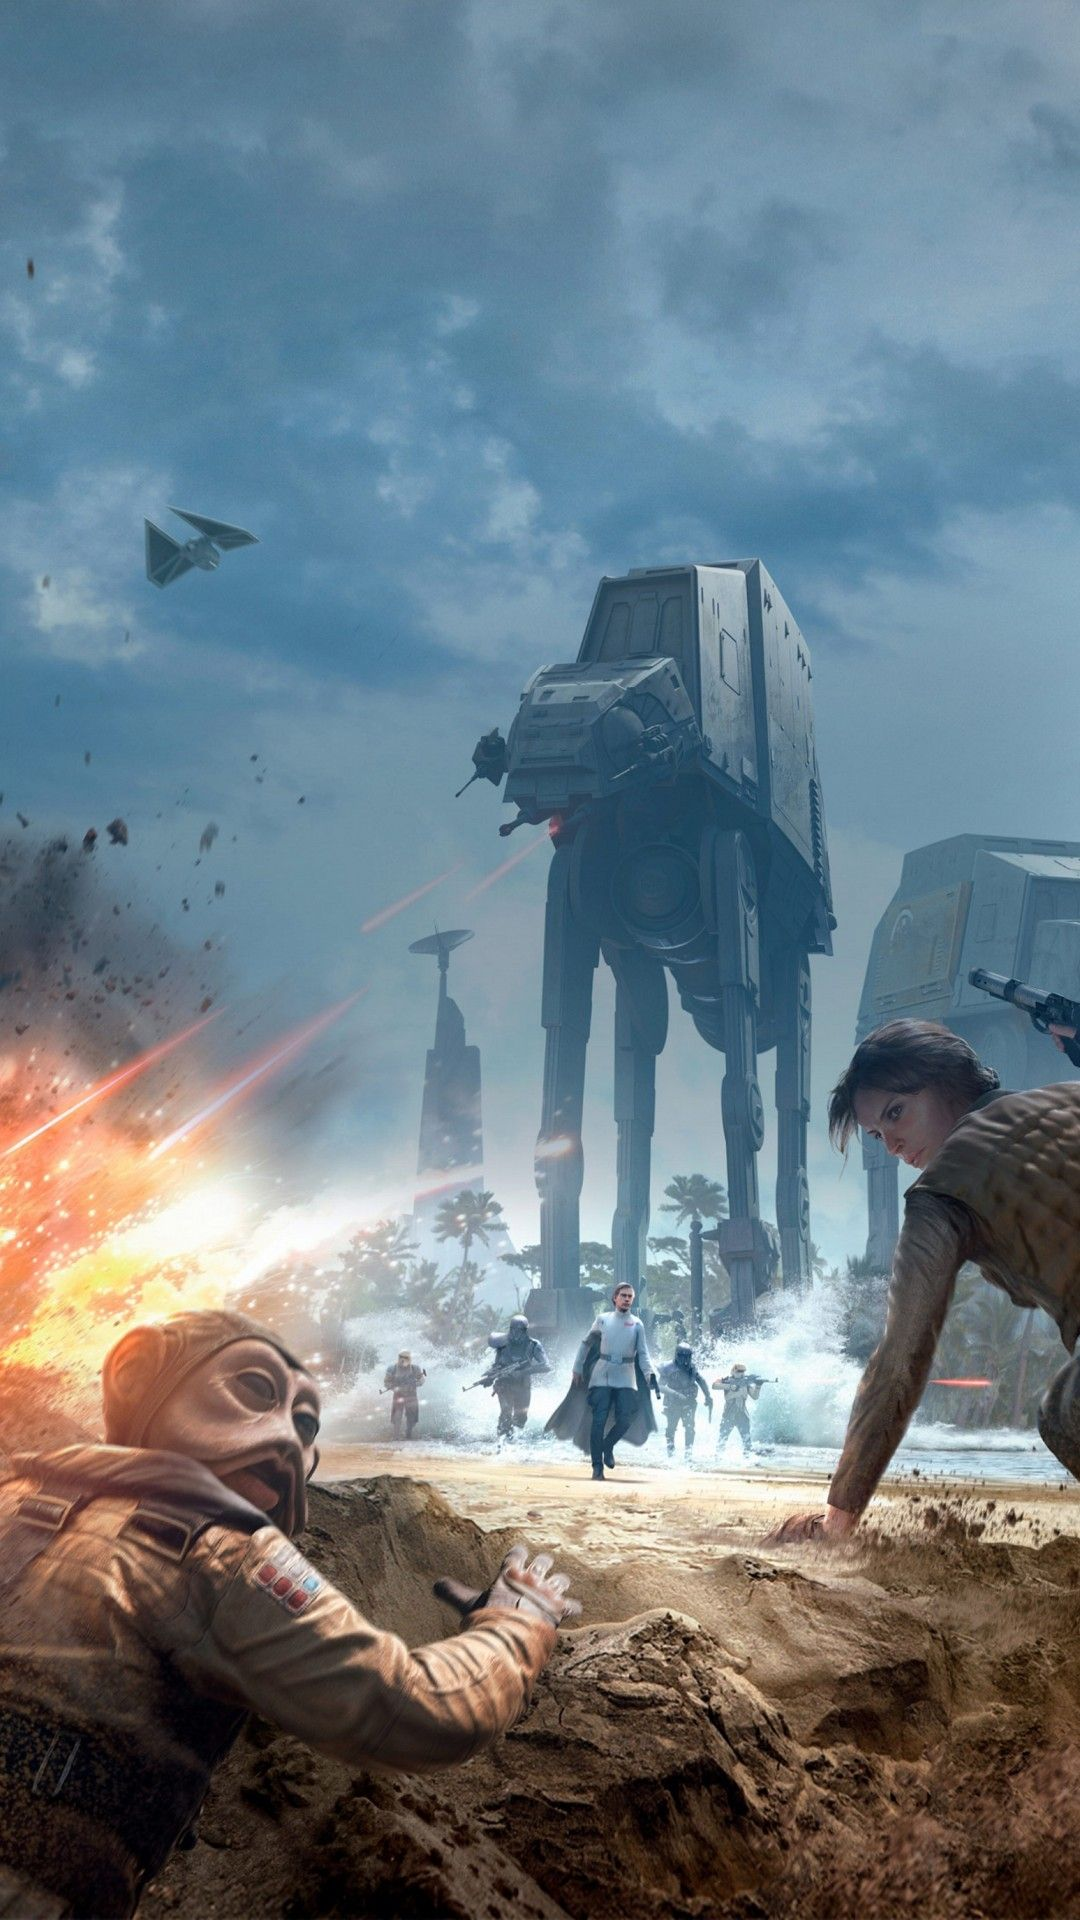 Epic Star Wars Battlefront Background Picture In 2020 Star Wars Battlefront Background Pictures Battlefront